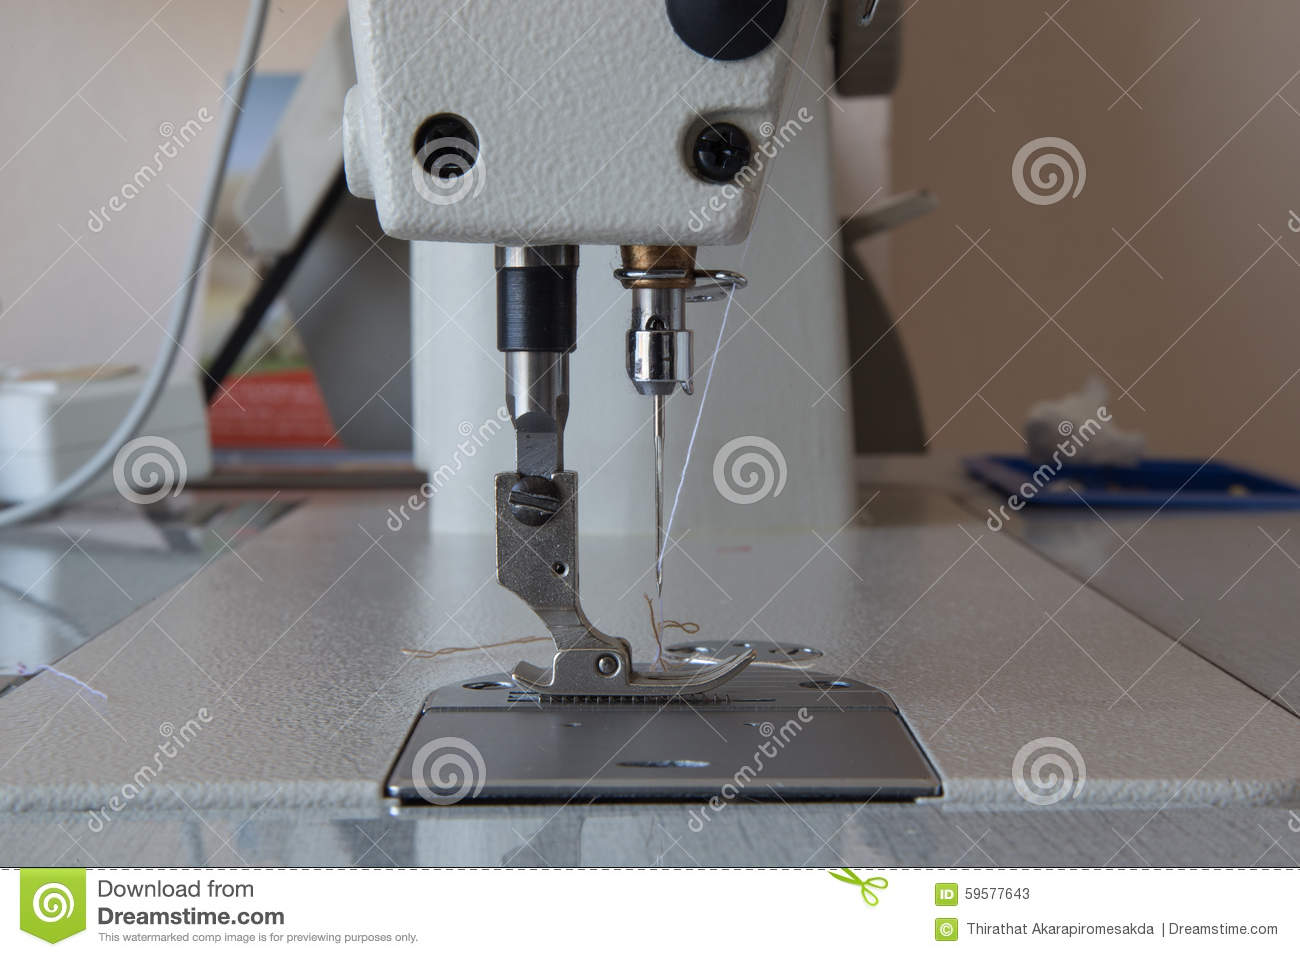 Rtnewlinknewsmakersprese furthermore Megazine further Stock Photo Yarn Thread To Be  bined Weaving Machine Image51061507 in addition Royalty Free Stock Photography Sewing Green Thread Spool Needle Image33000647 as well Stock Photo Blue Jeans Reverse Side Needle Image53188527. on needle manufacturing pr…